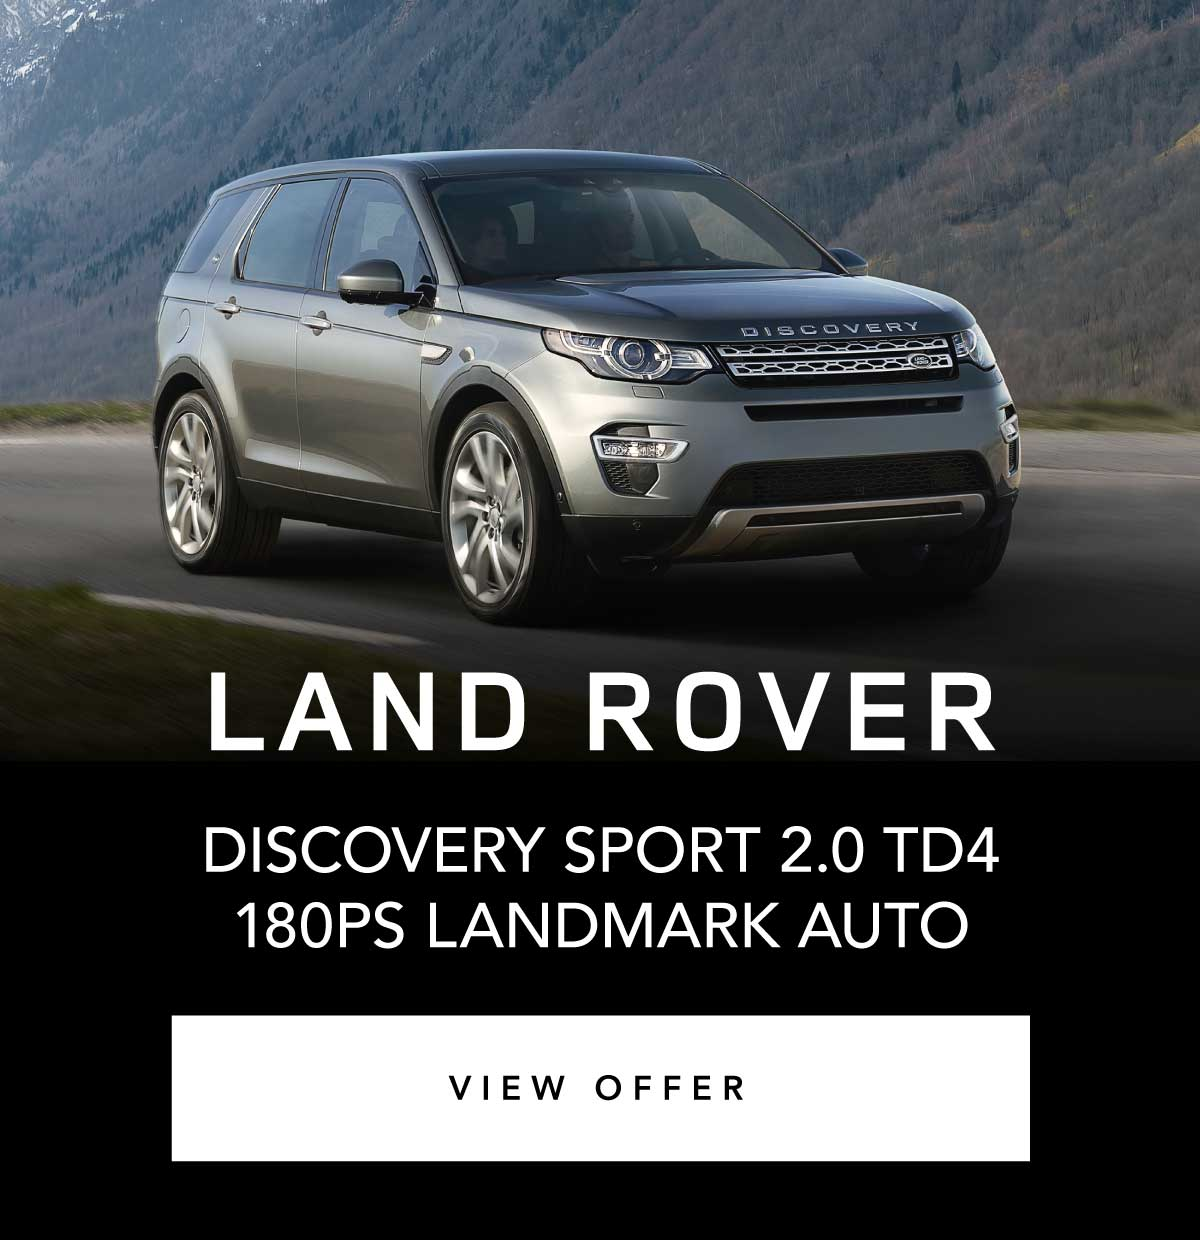 Land-Rover-Discovery-Sport-2.0-TD4-Landmark-BB-100119-W2-1